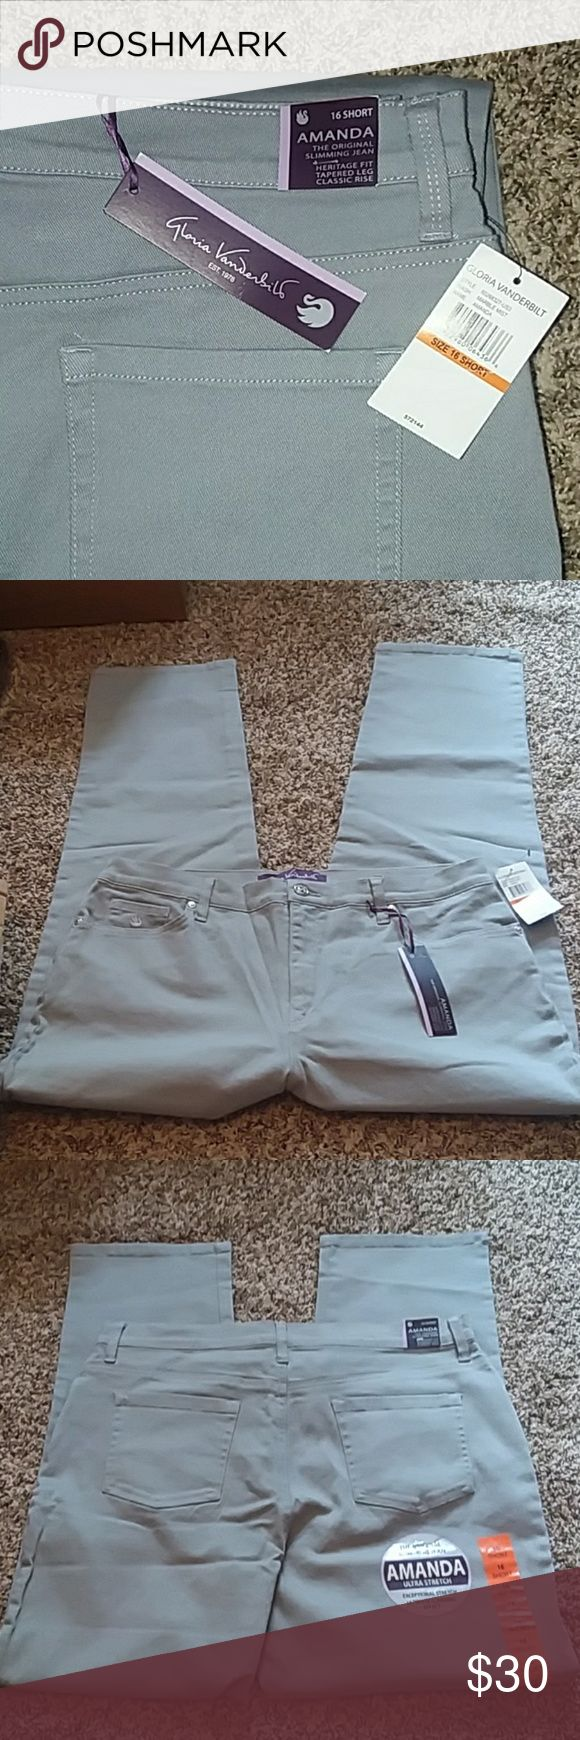 """NWT 16 Short Gloria Vanderbilt Amanda Jeans NWT 16 Short Amanda jeans by Gloria Vanderbilt. The color is a light gray, called """"Marble Mist. """"  Ultra stretch, slimming jeans with a heritage fit, tapered leg, and a classic (high waist) rise. 5 pockets, belt loops, button and zipper closure.   98% Cotton, 2% Spandex.  Measurements: 17.5"""" flat waist, 12"""" rise, 29"""" inseam.  Offers and questions are encouraged! Gloria Vanderbilt Jeans"""